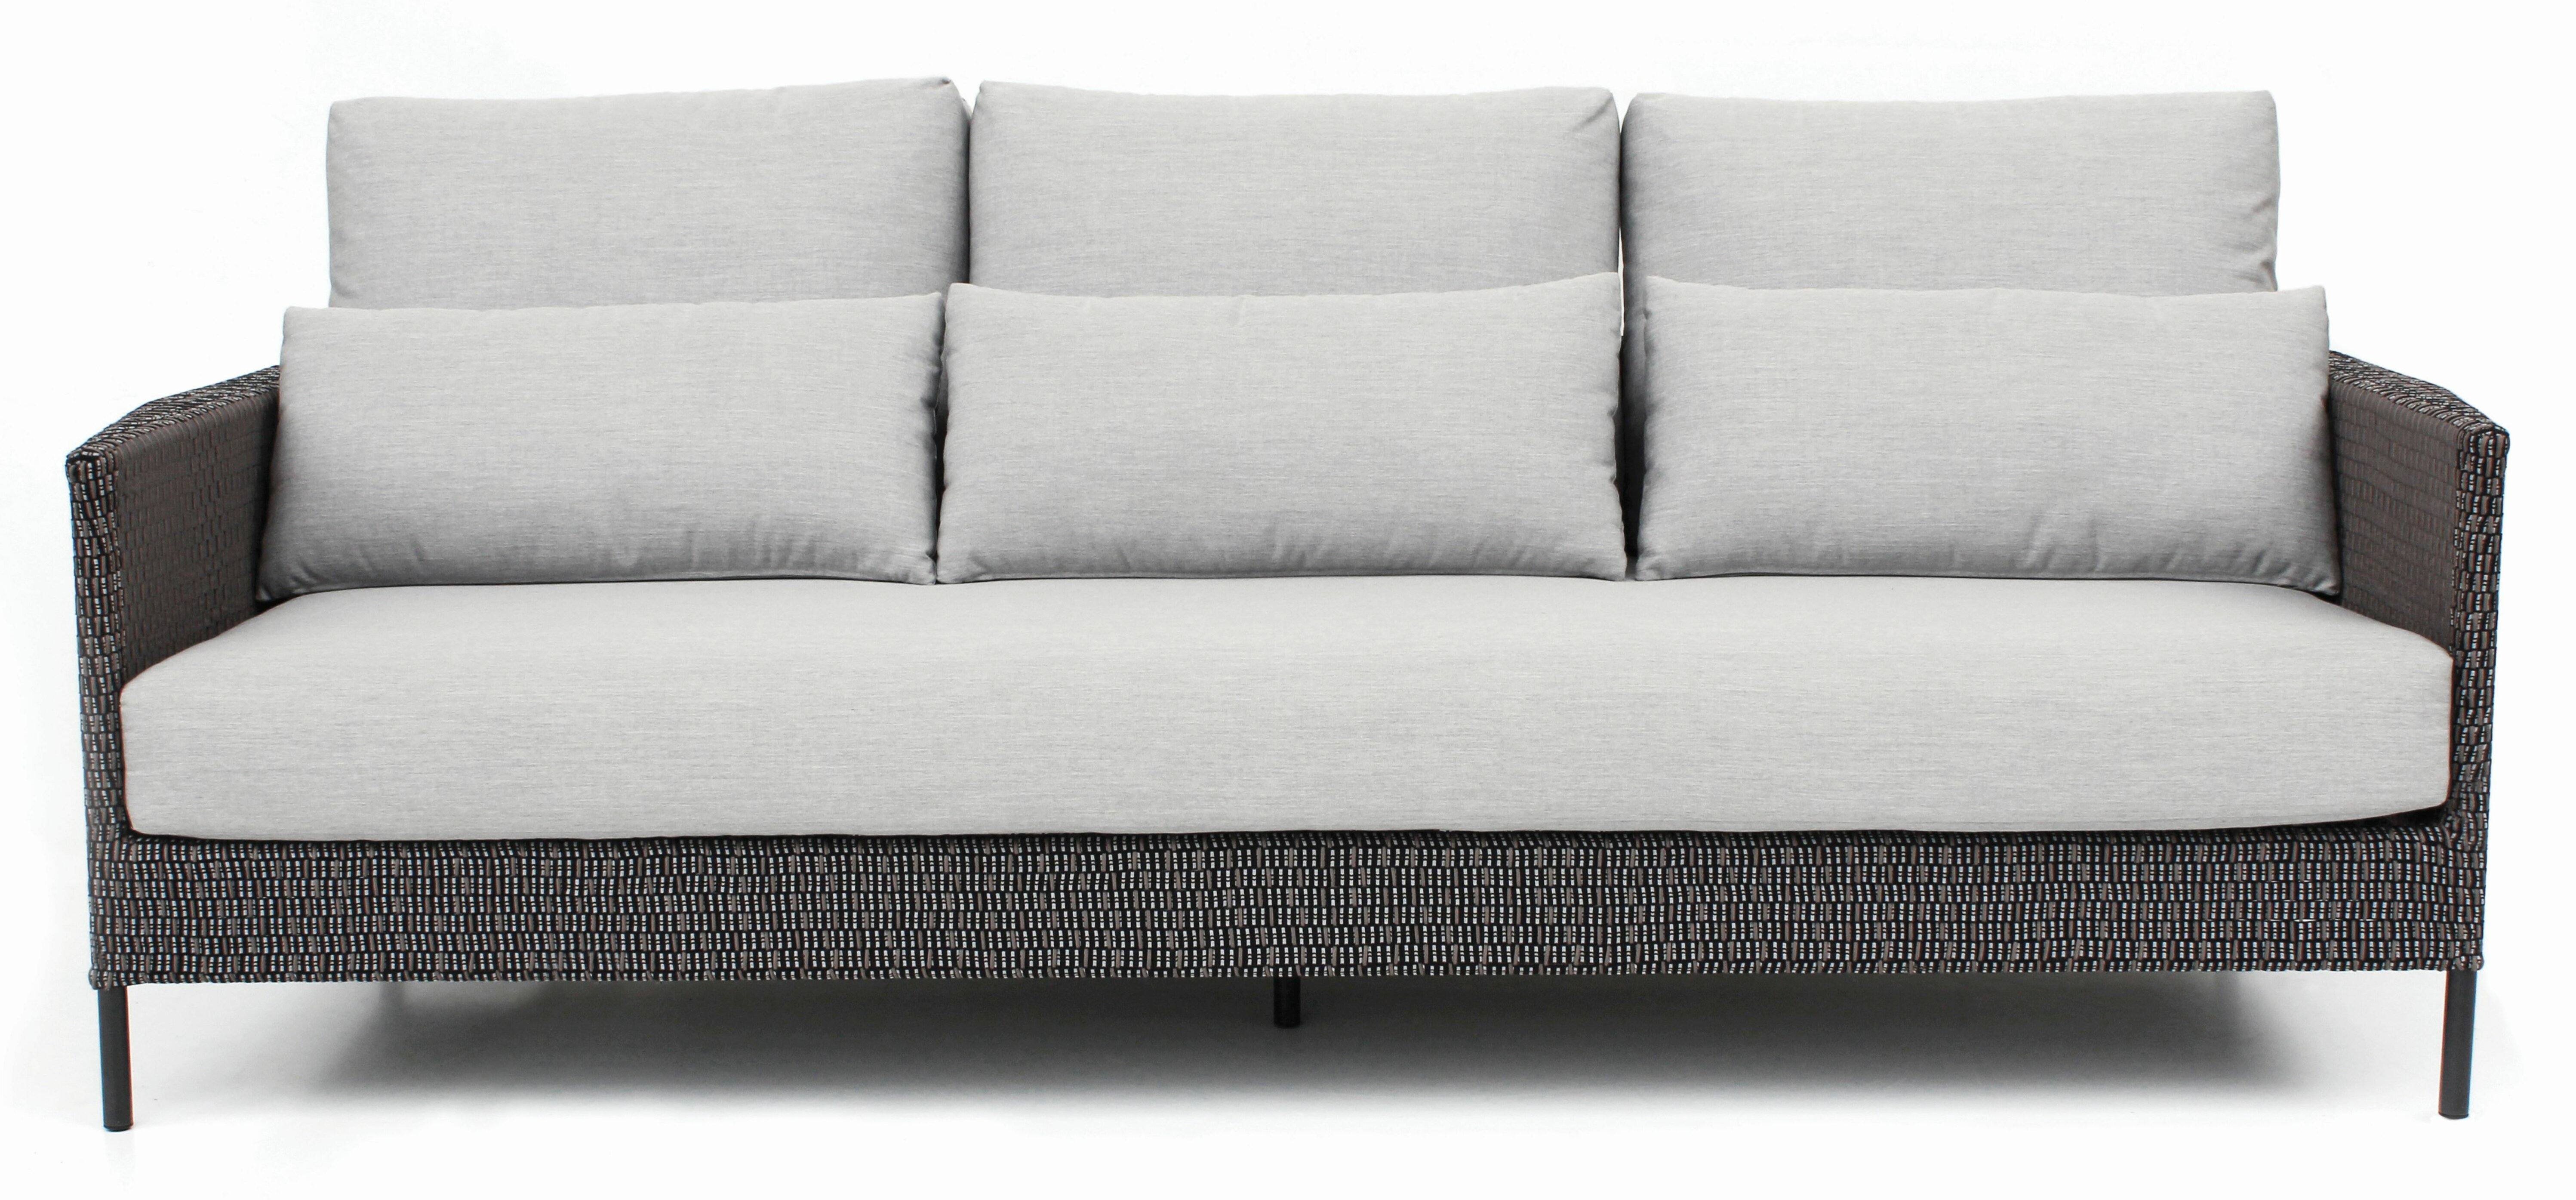 black modern outdoor solid loveseat white you love beautiful cheap patio cushions for with will wicker that idea furniture